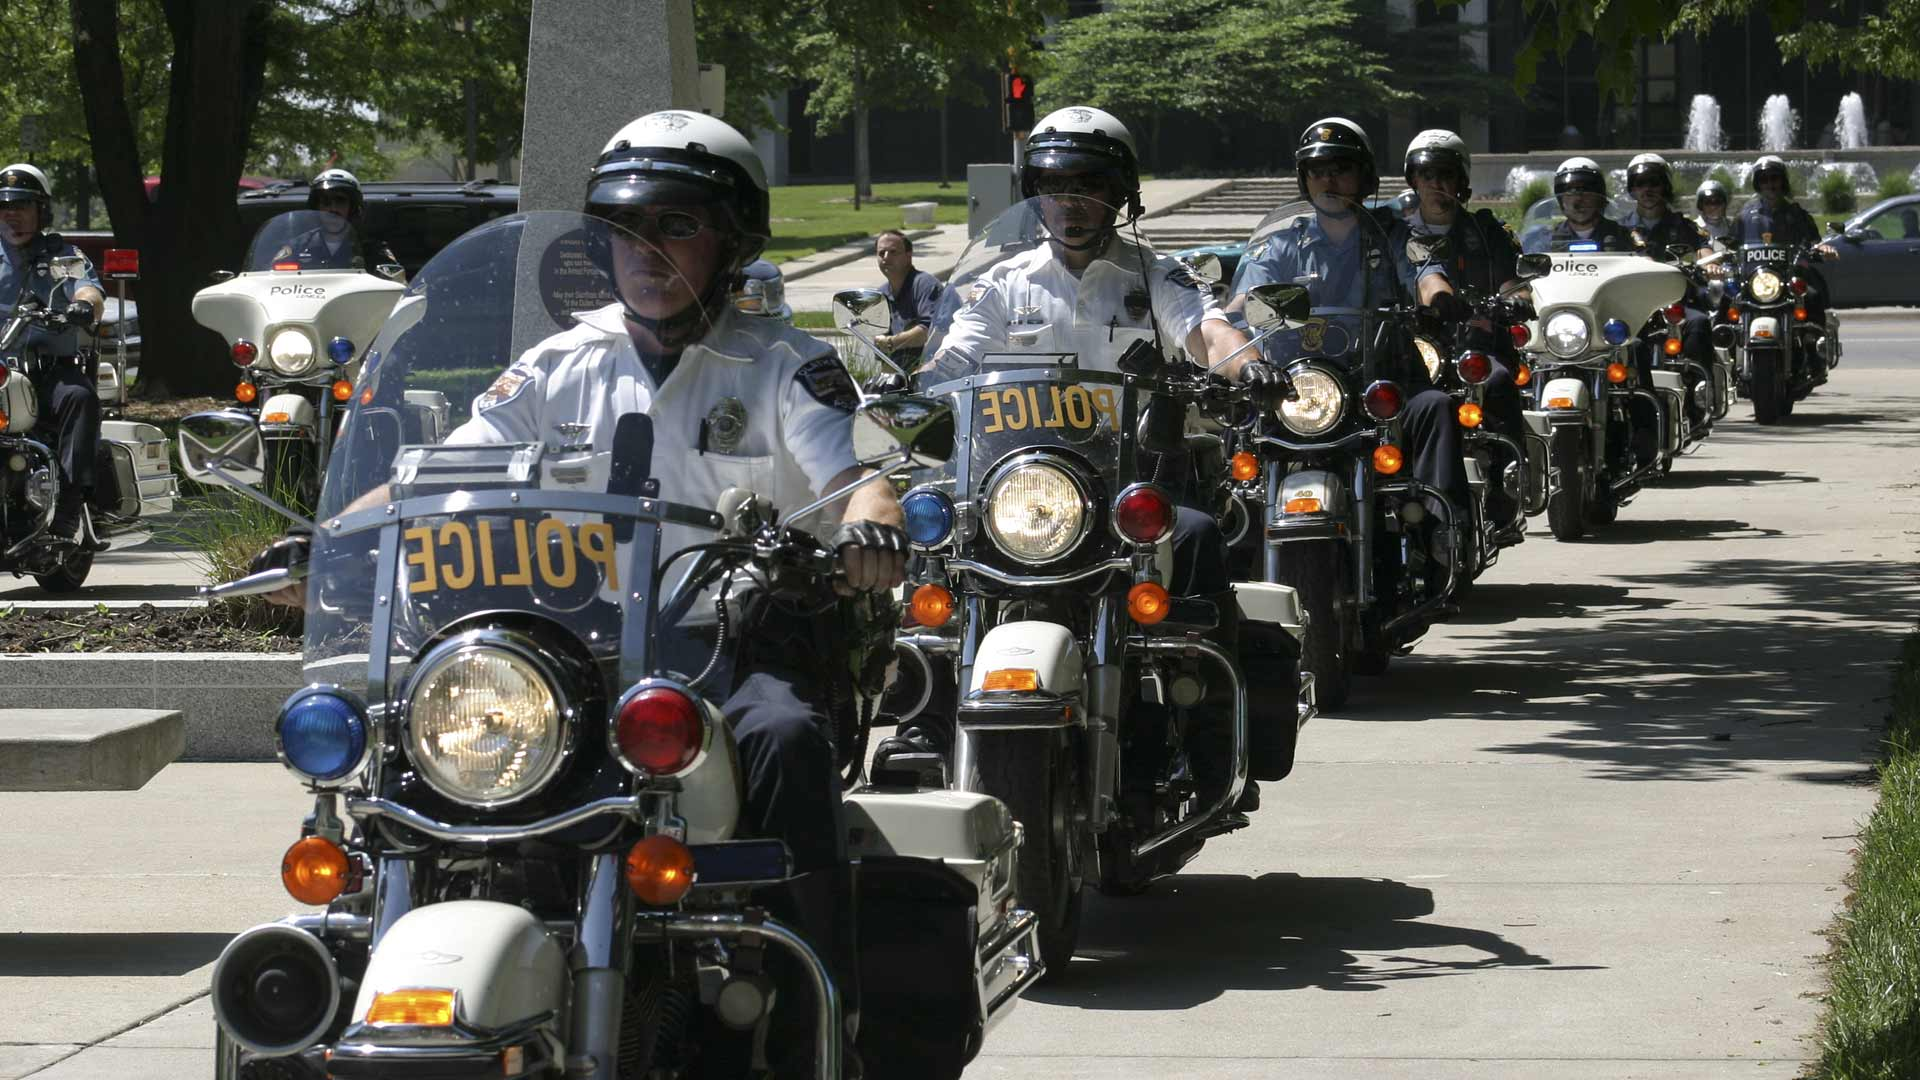 Bike officers Layer-16